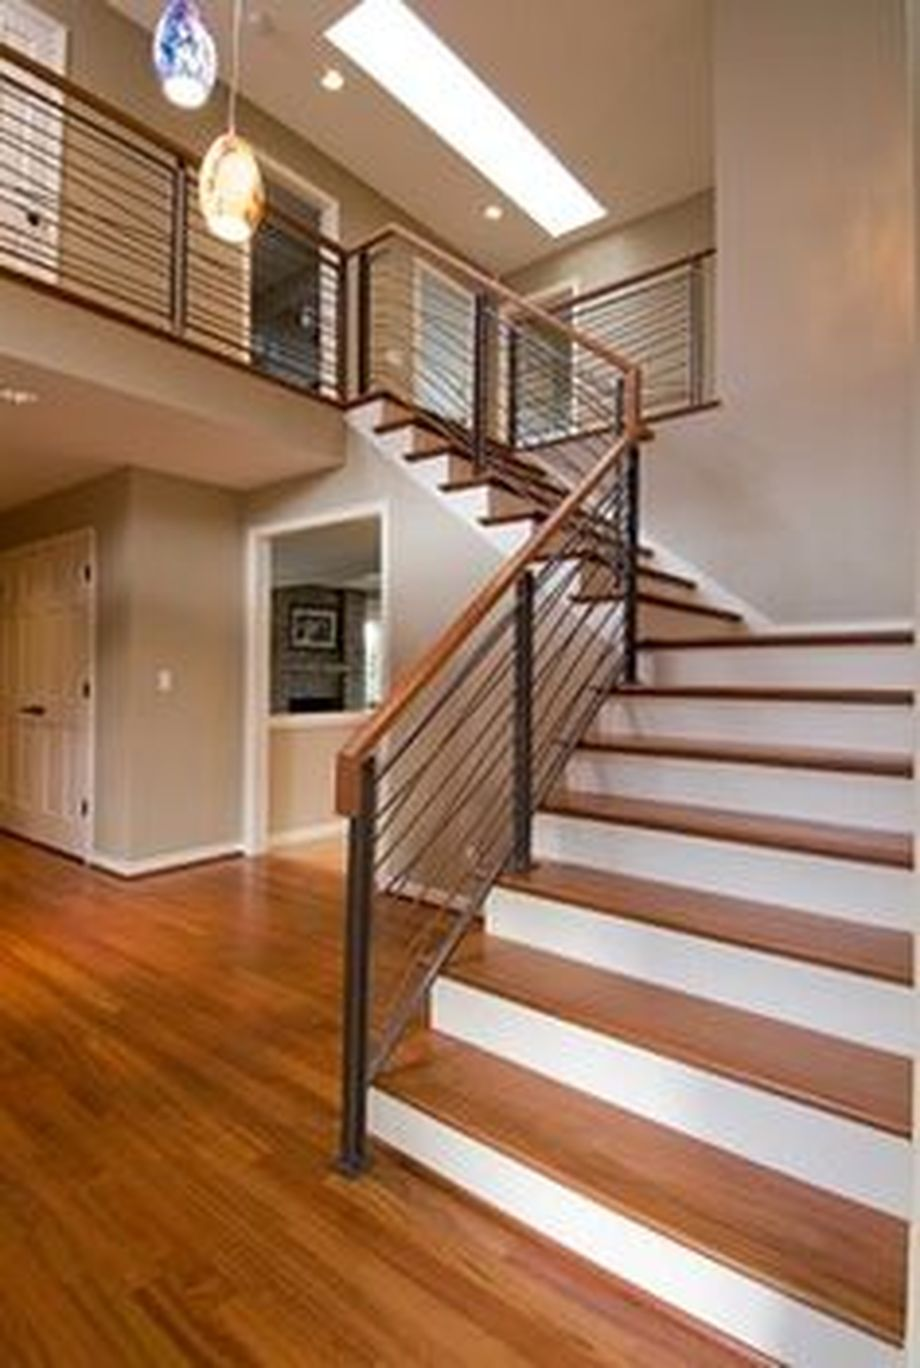 40 Best Railing Spindles And Newel Posts For Stairs: 40 Awesome Modern Stairs Railing Design 38